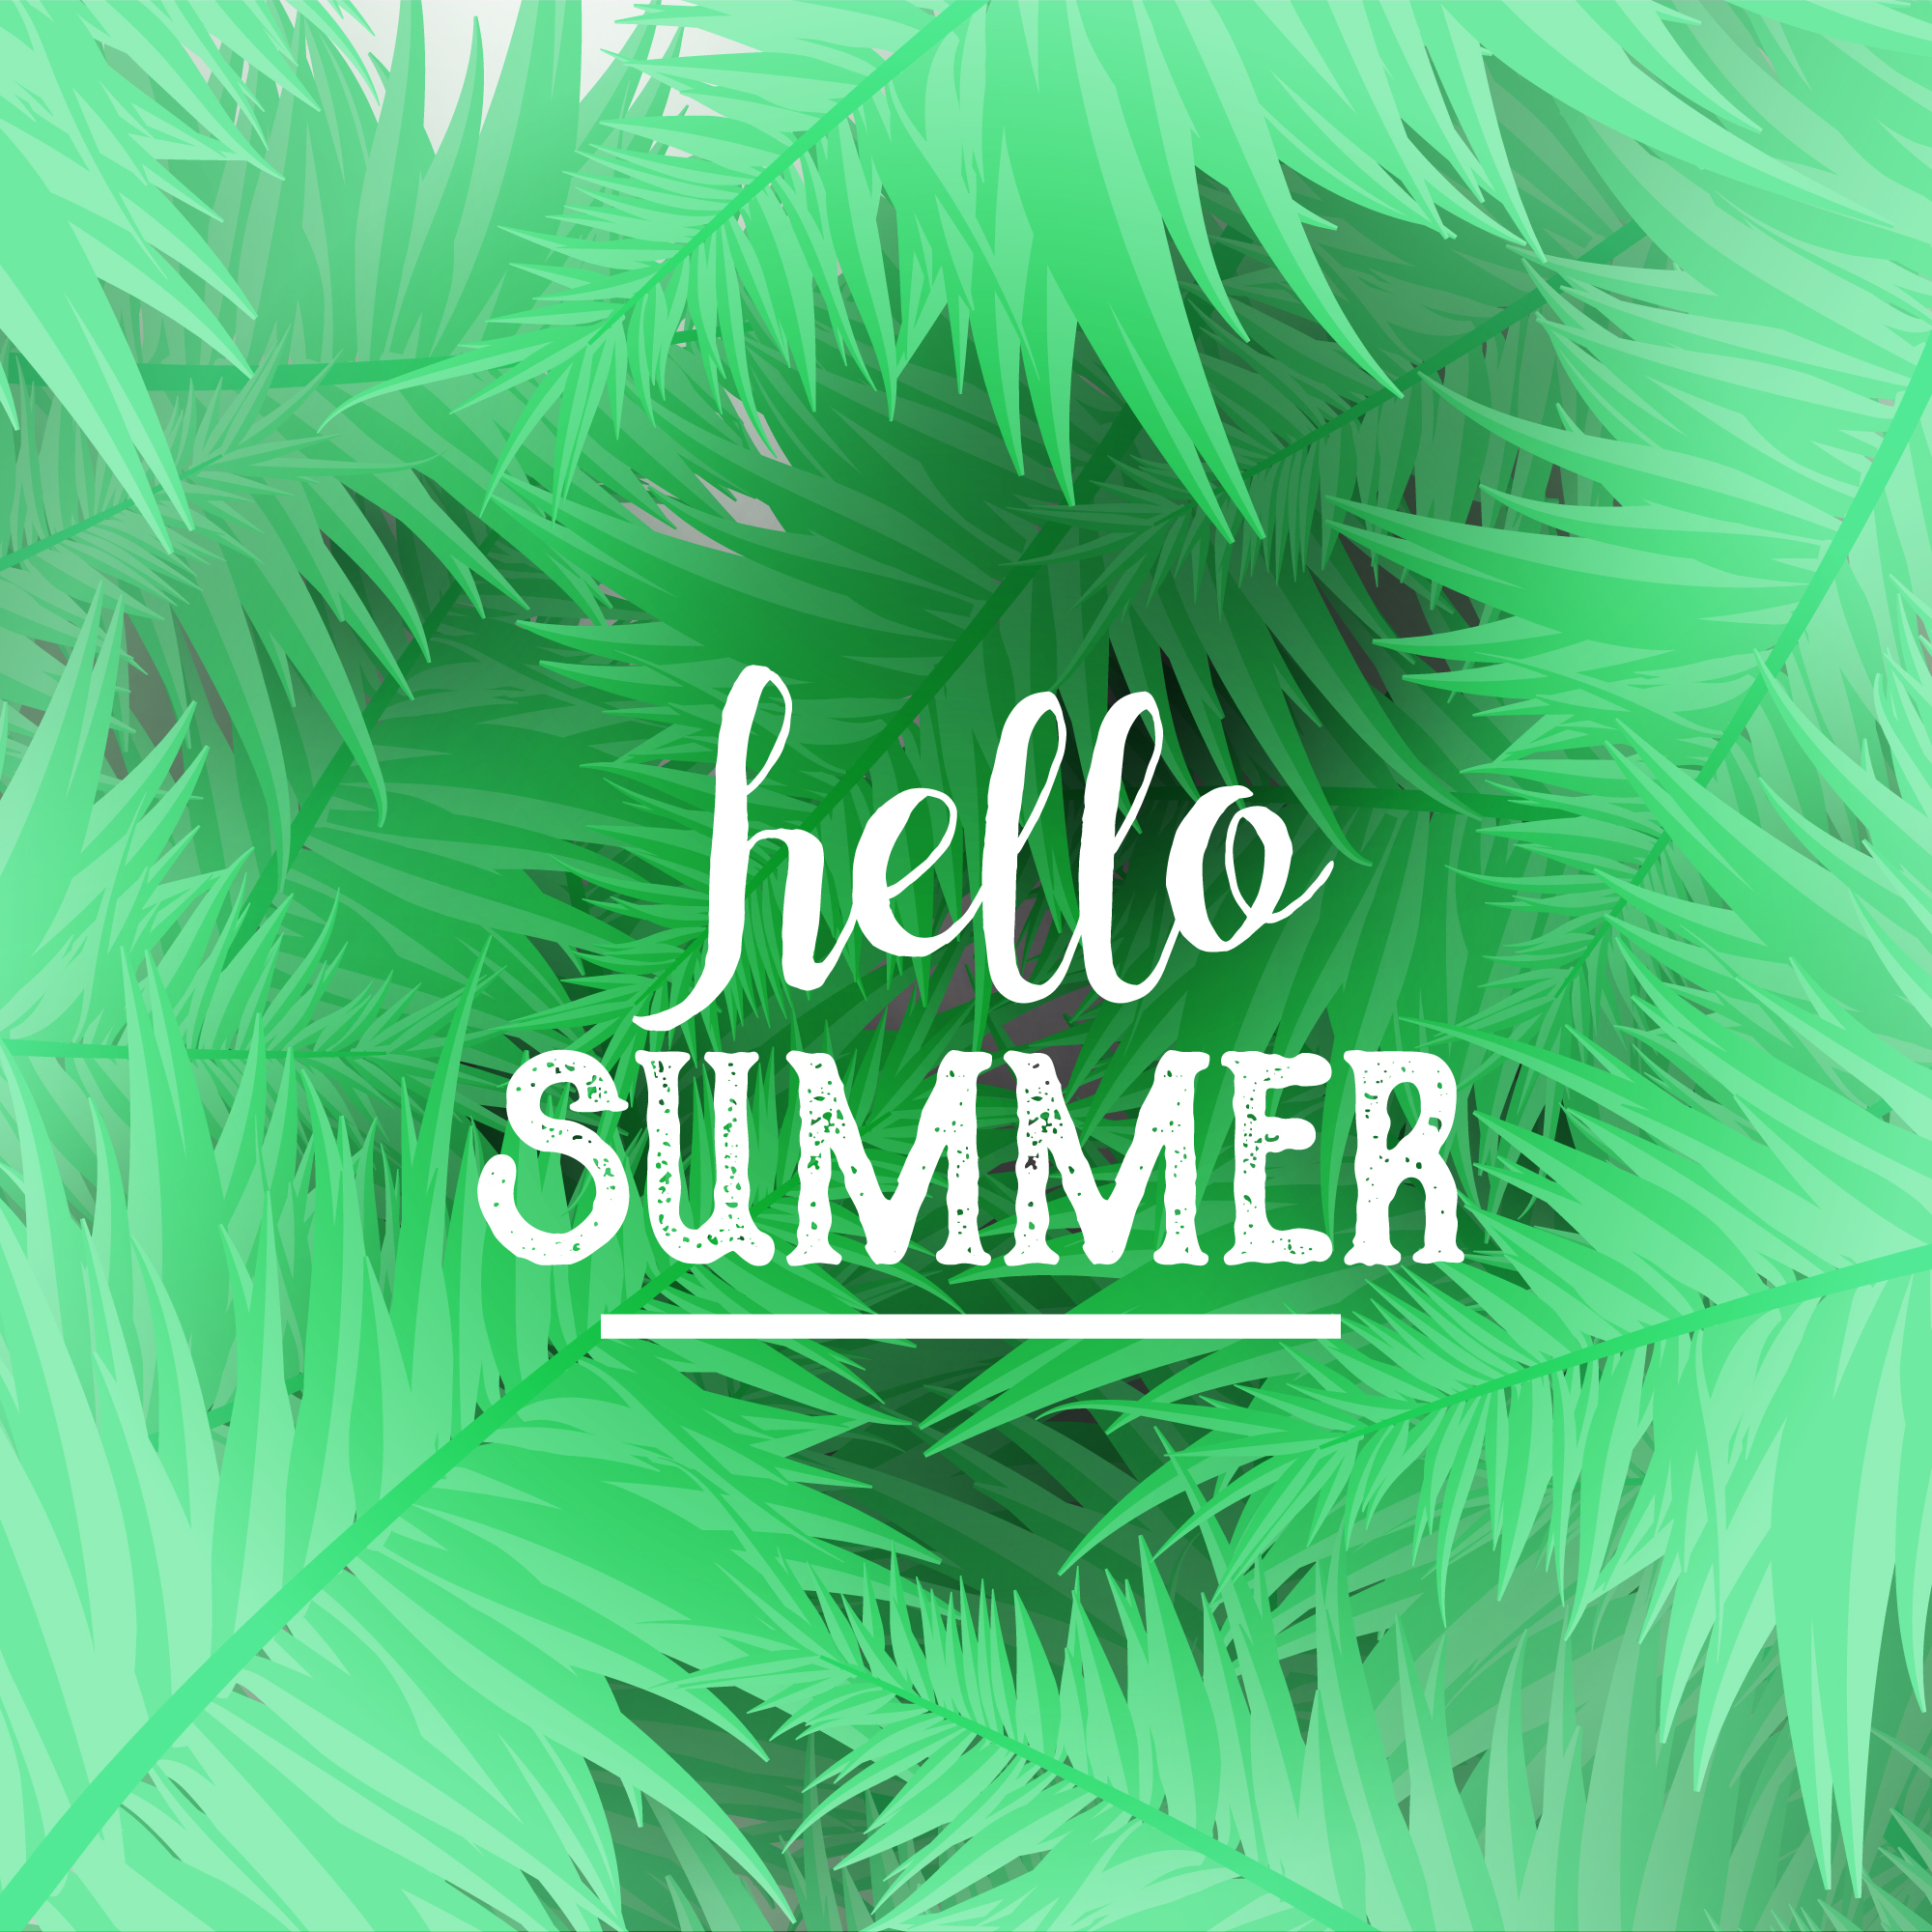 Hello summer background with palm tree design